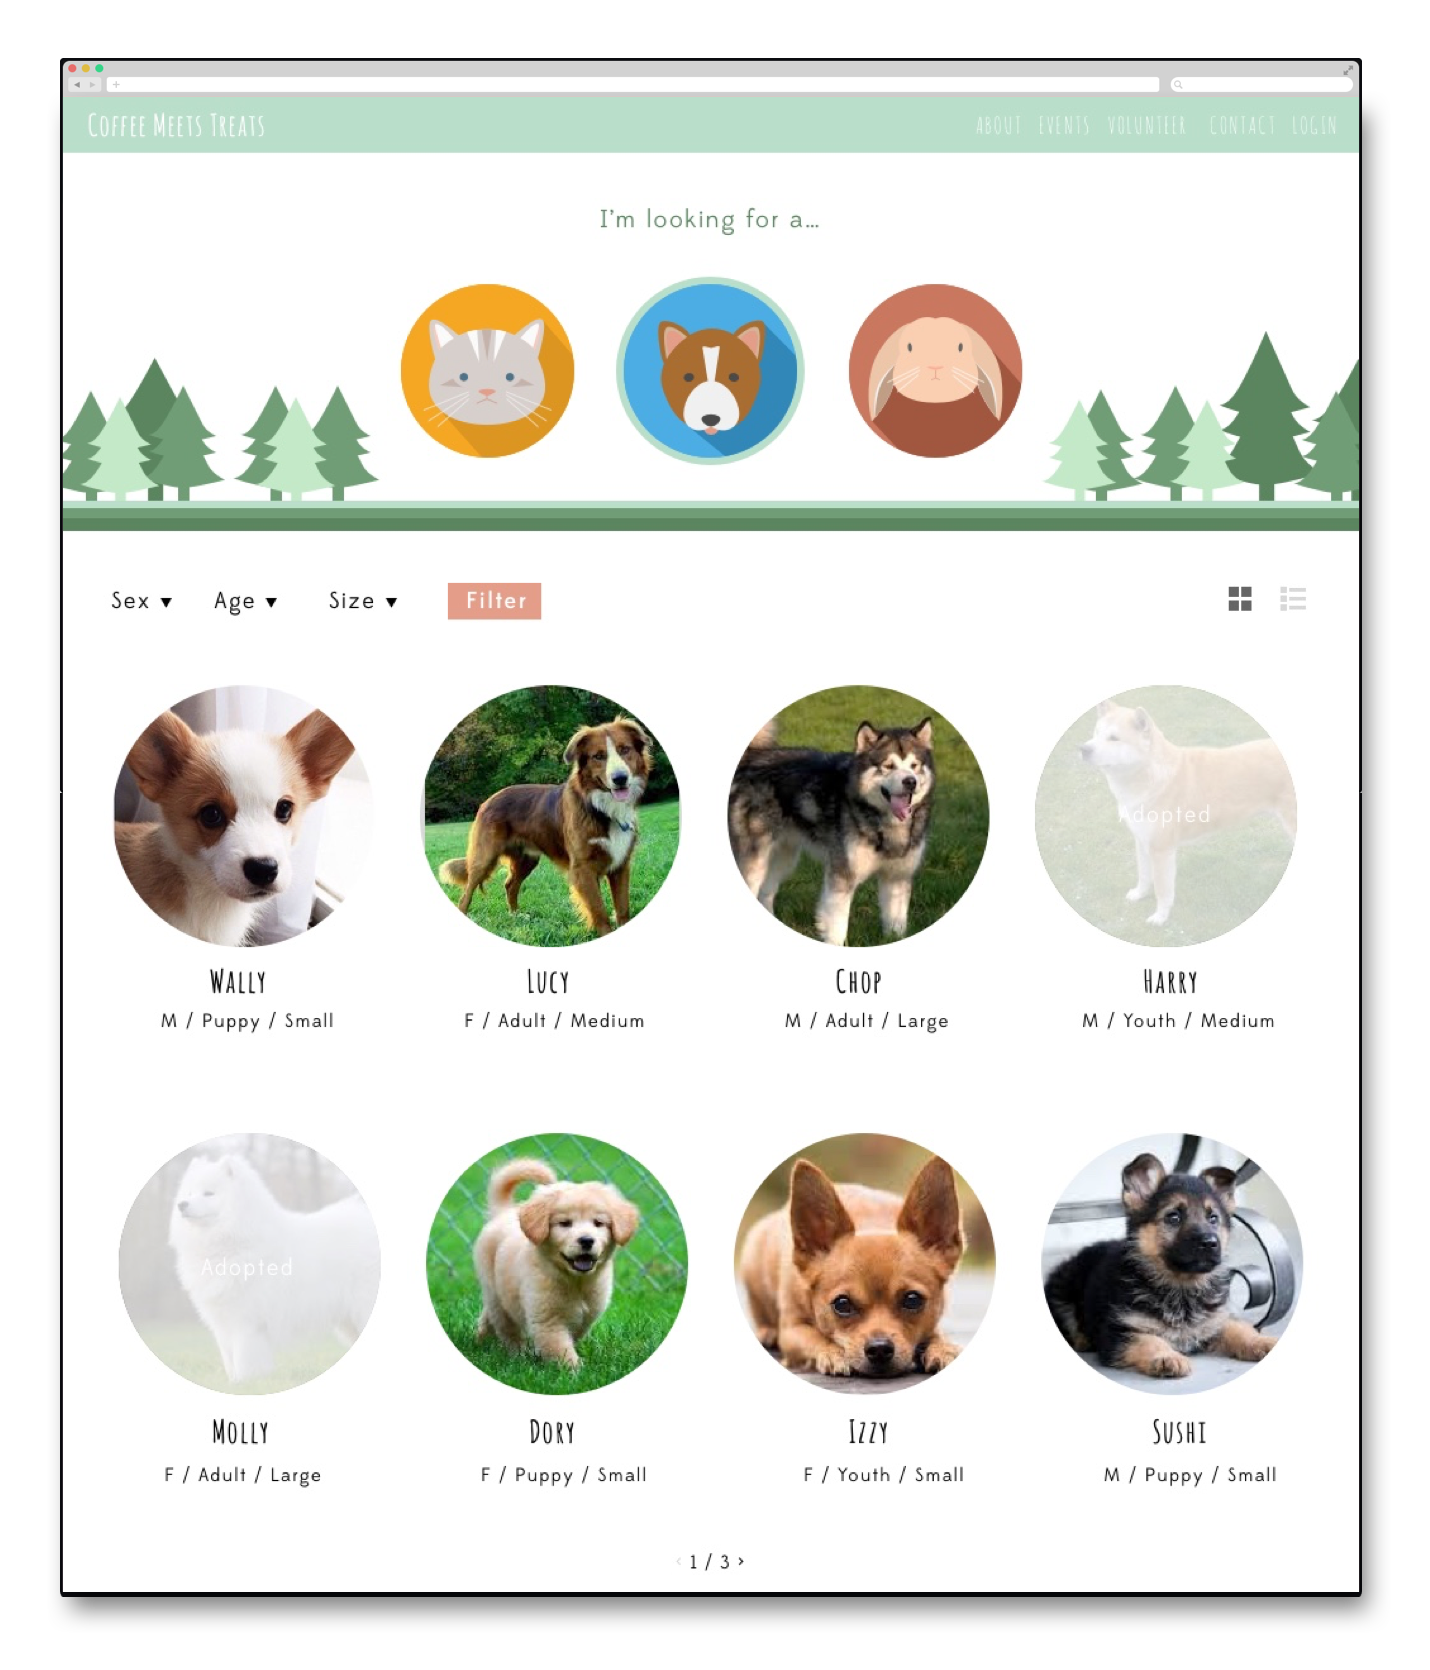 When you click on a specific type of animal, you'll see a sorted list of that type of animal with pertinent info about them.